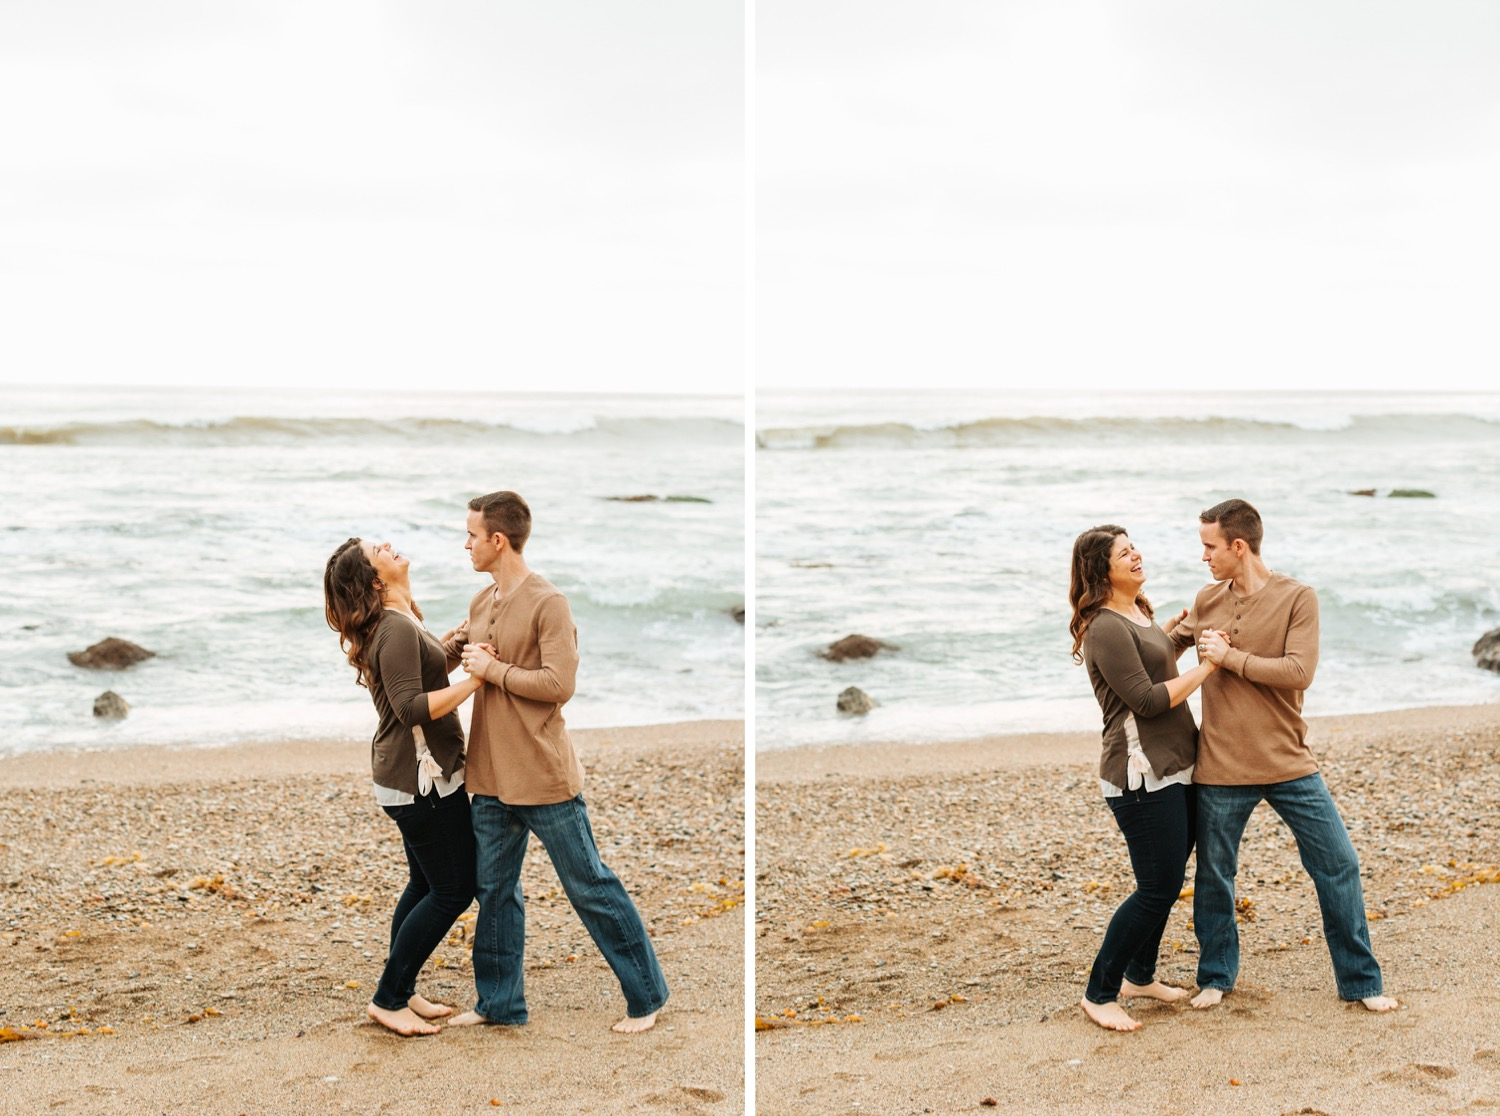 dancing-on-the-beach-in-palos-verdes-california